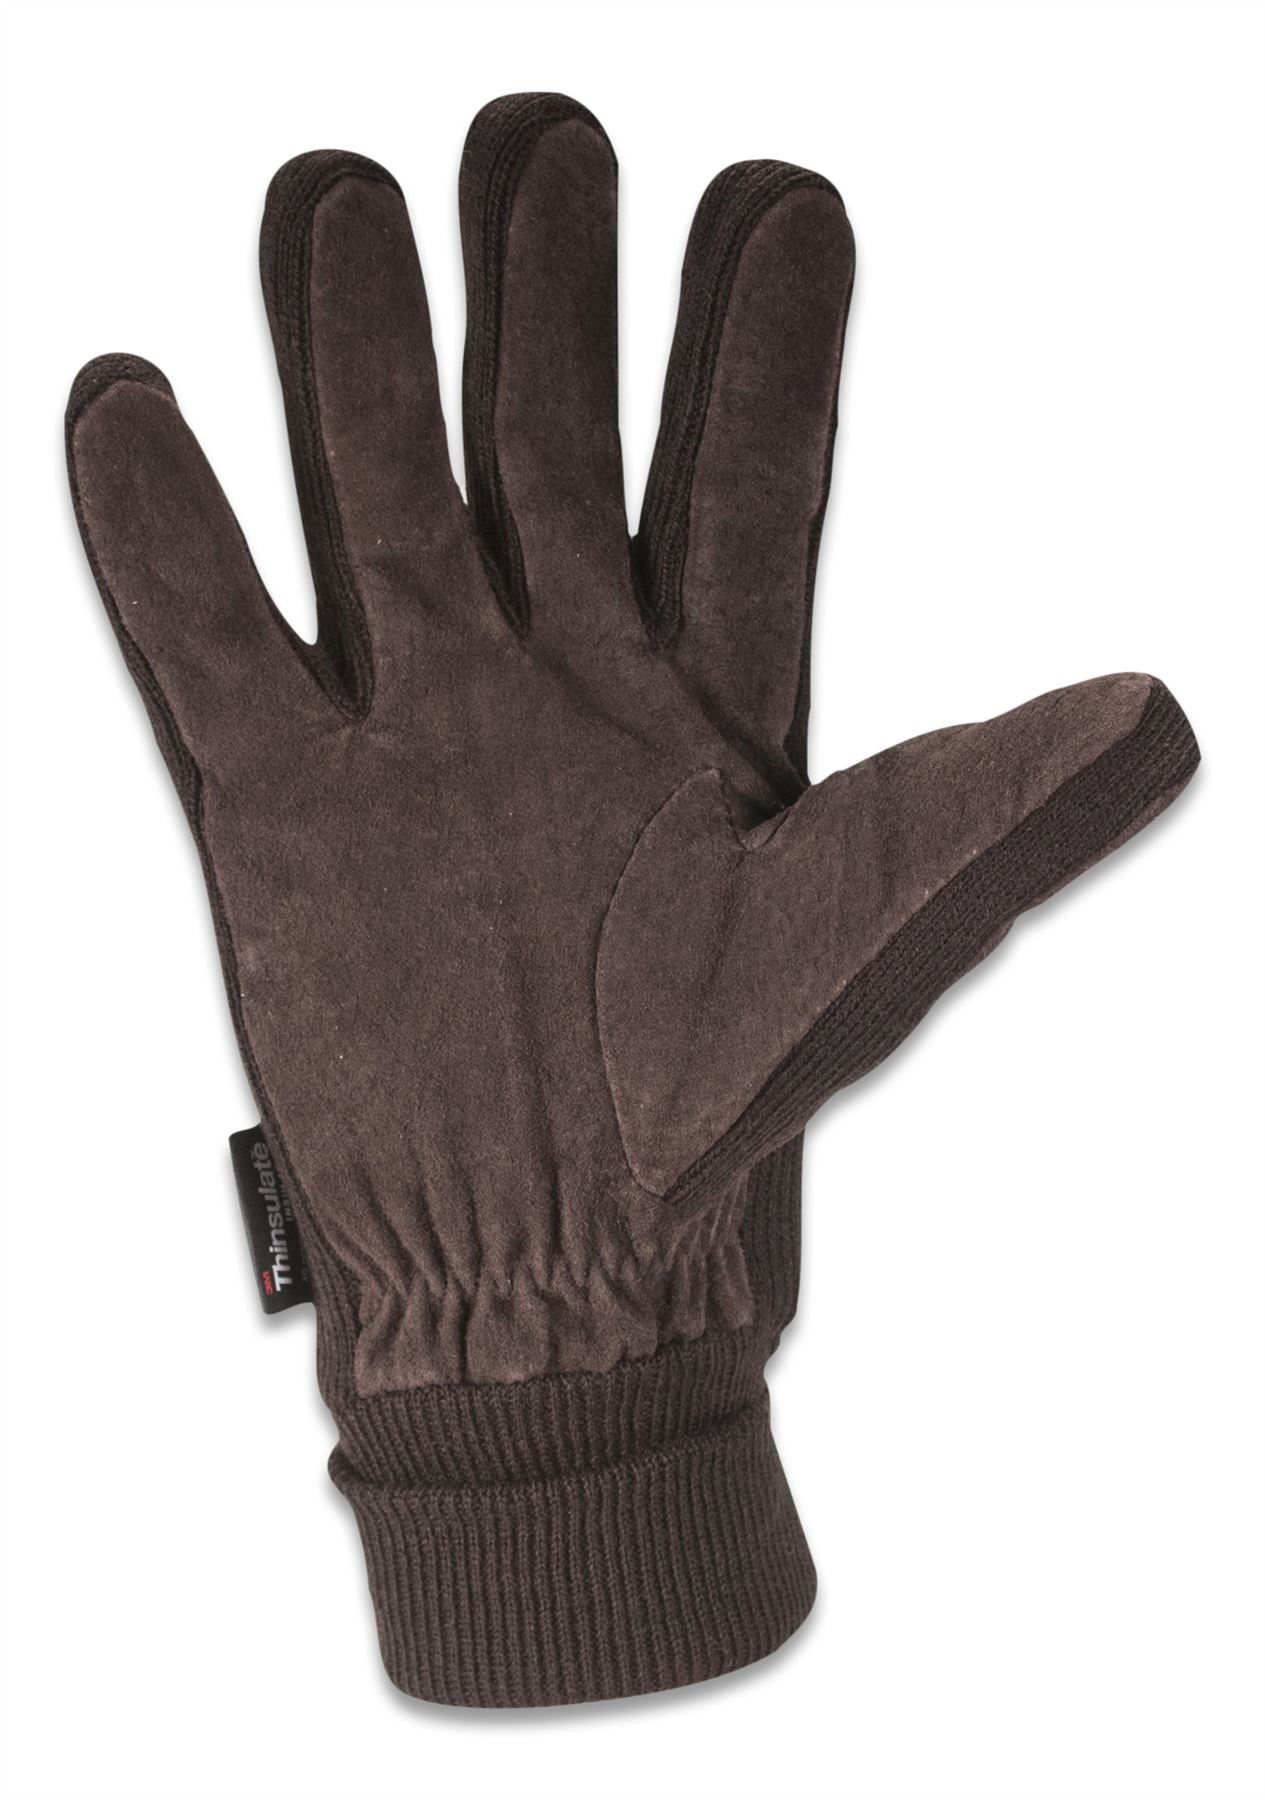 Mens leather gloves thinsulate - Quivano Mens Suede Leather Gloves Thinsulate Lined Elasticated